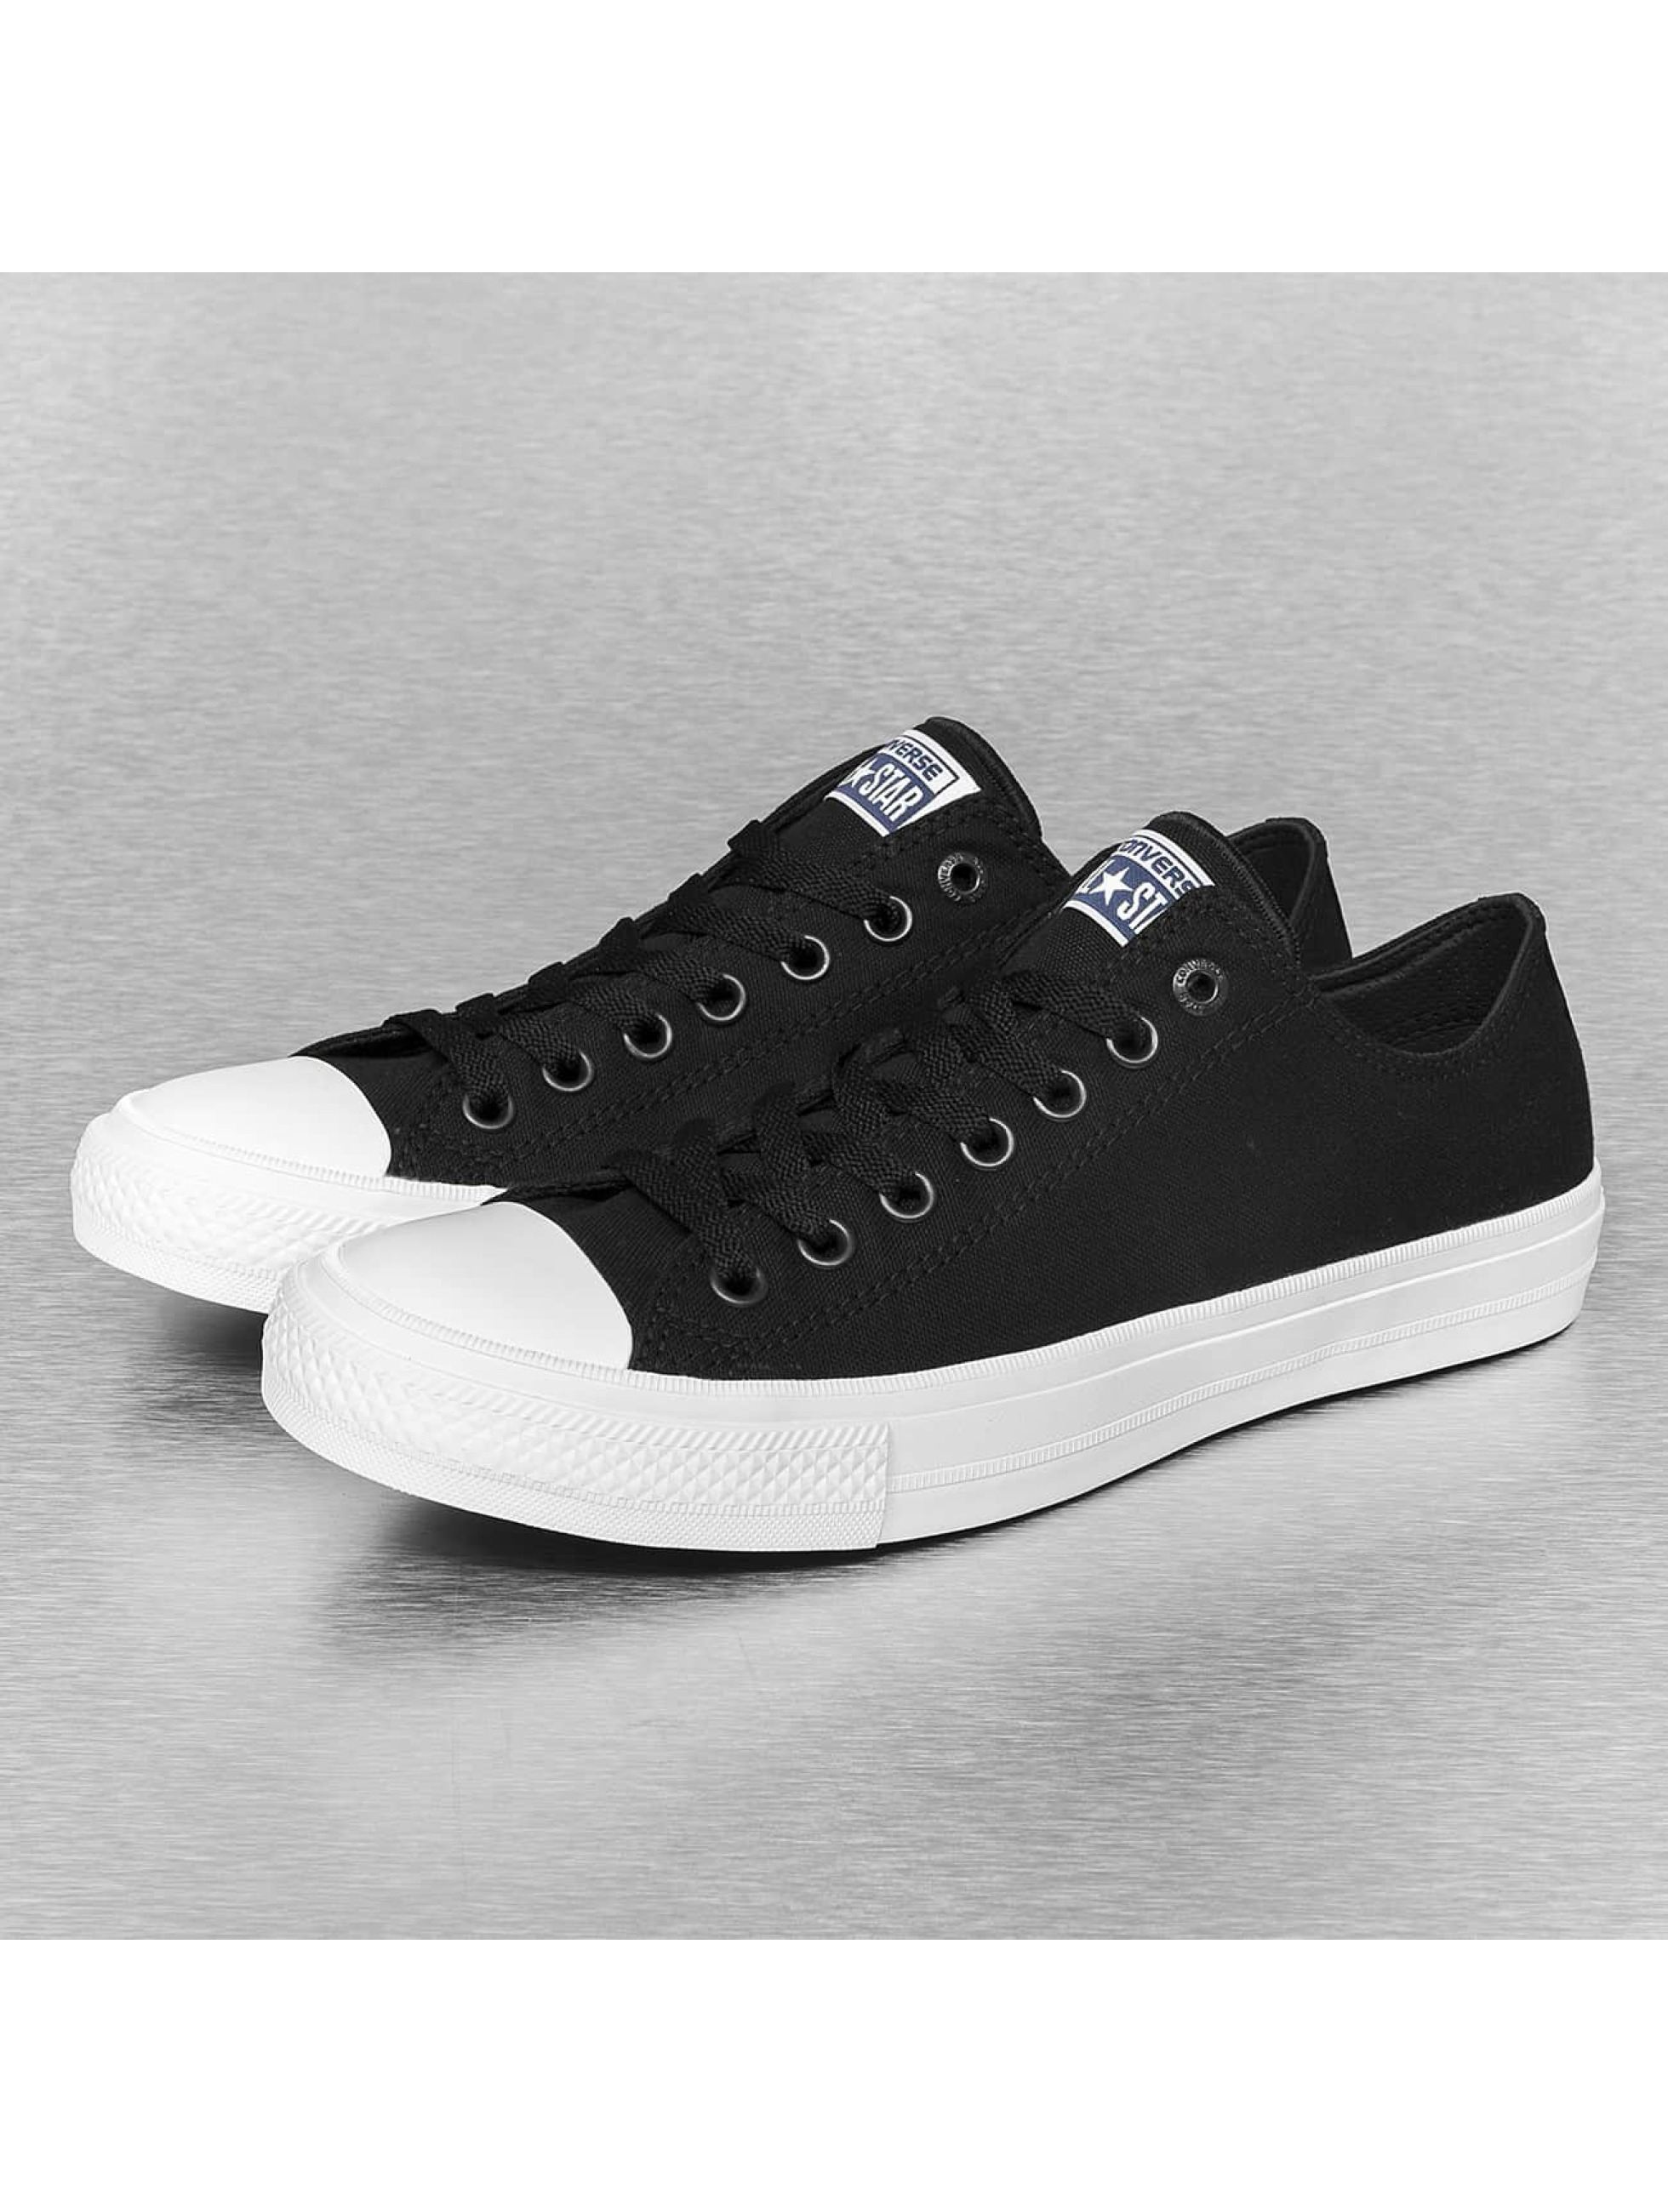 Sneaker Chuck Taylor All Star II in schwarz